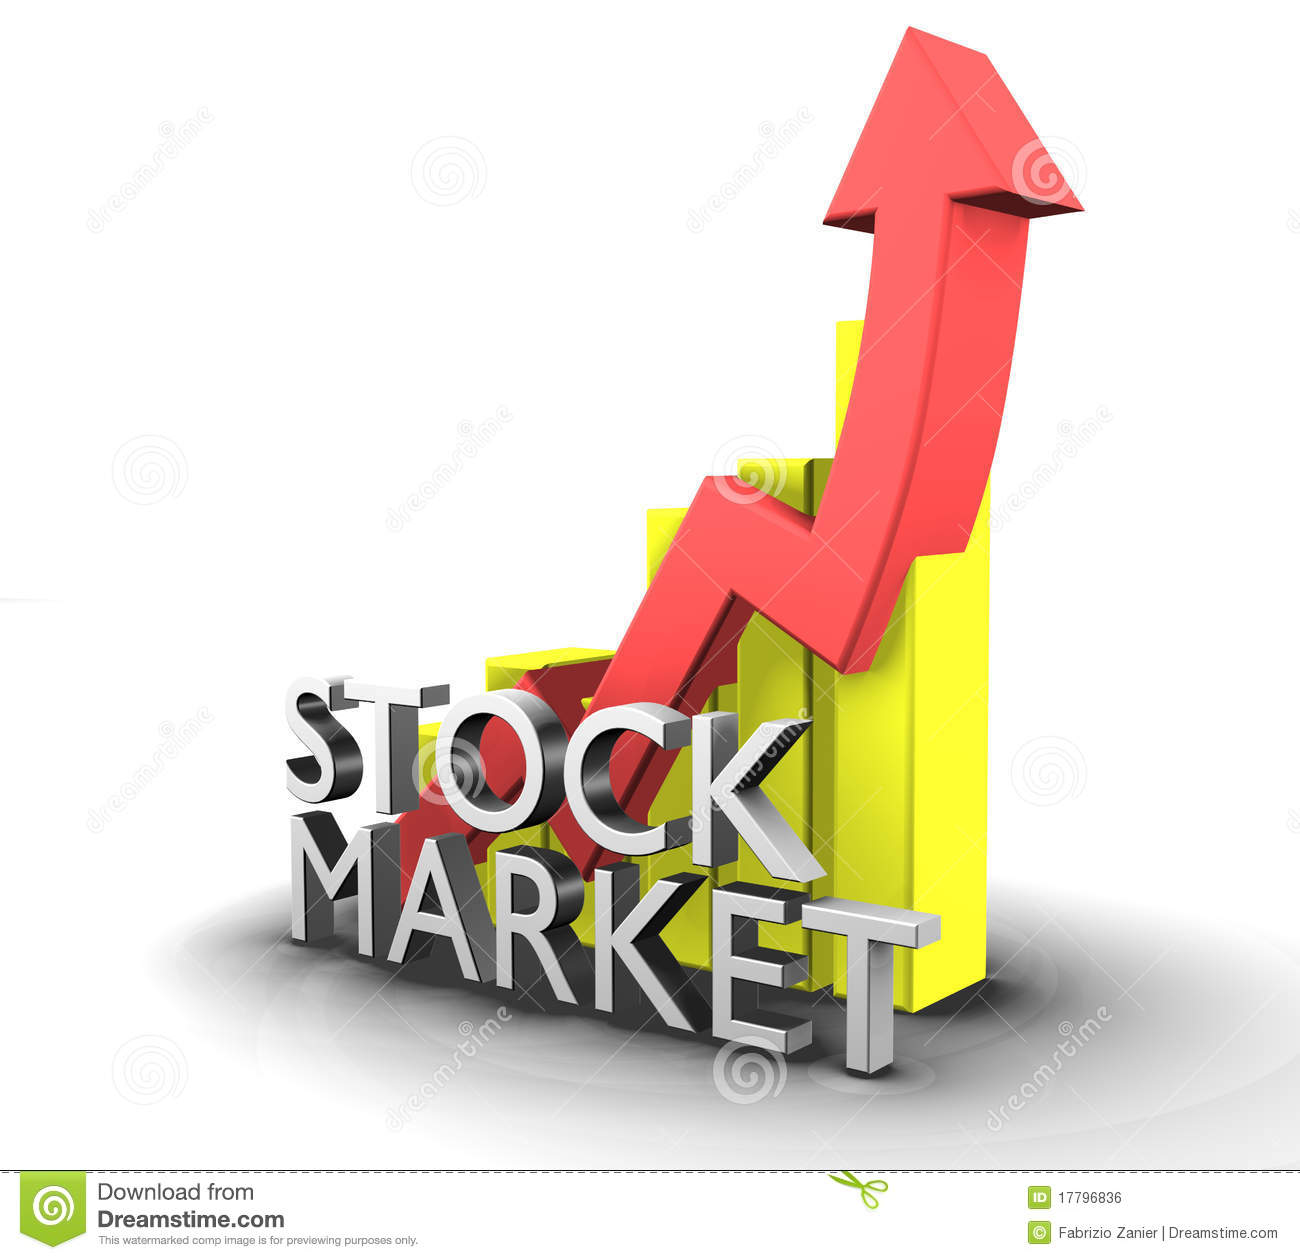 statistics-graphic-stock-market-17796836 Uae States Map on albania states map, puerto rico states map, iraq states map, peru states map, bolivia states map, austria states map, india states map, israel states map, benelux states map, belize states map, south korea states map, new zealand states map, hungary states map, austrailia states map, usa states map, turkey states map, the us states map, saudi arabia states map, finland states map, uk states map,